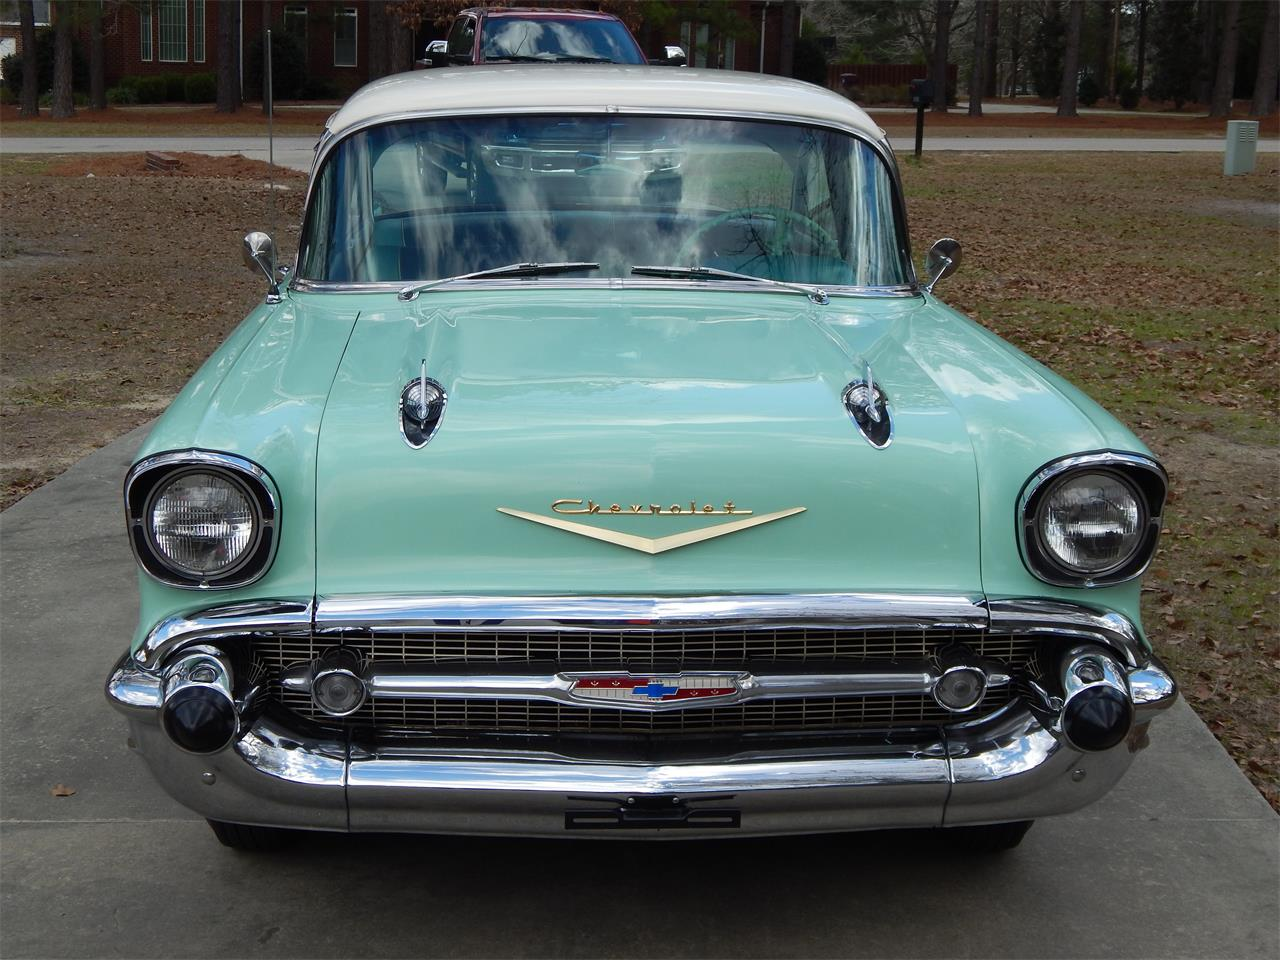 1957 Chevrolet Bel Air for sale in Online, Online Auction – photo 7